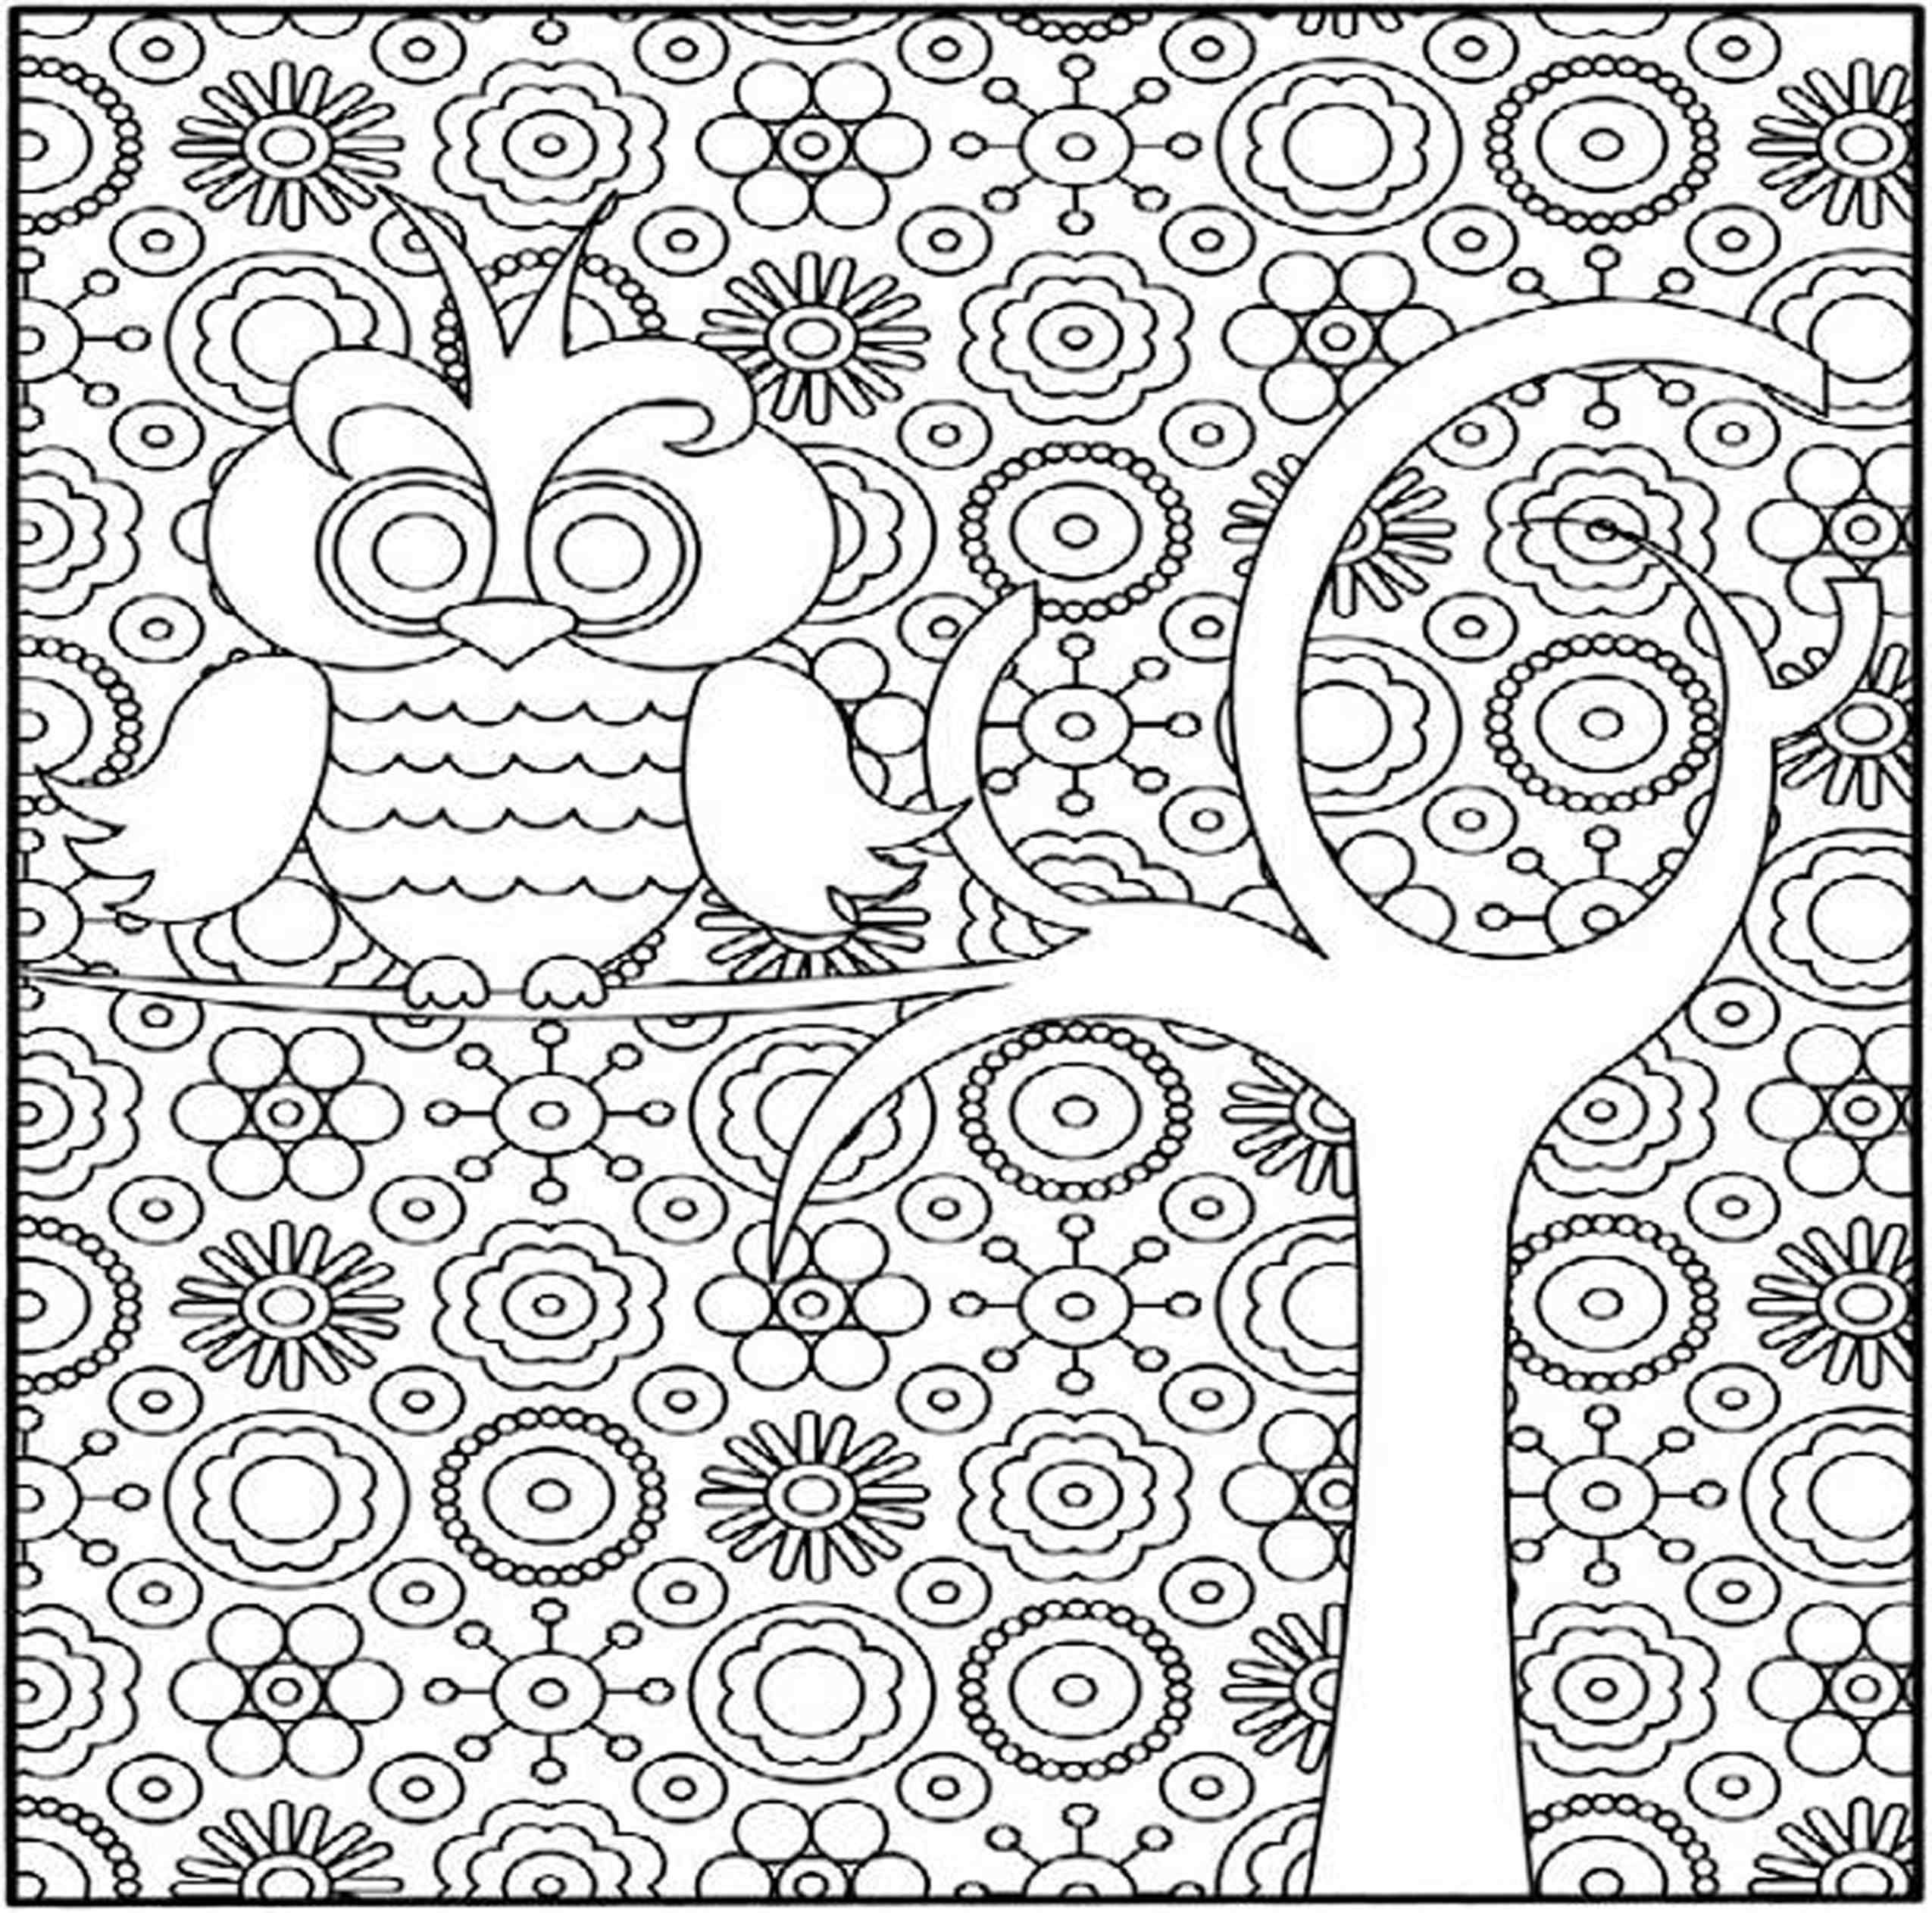 Hard Colouring In Pages - Coloring Pages for Kids and for Adults